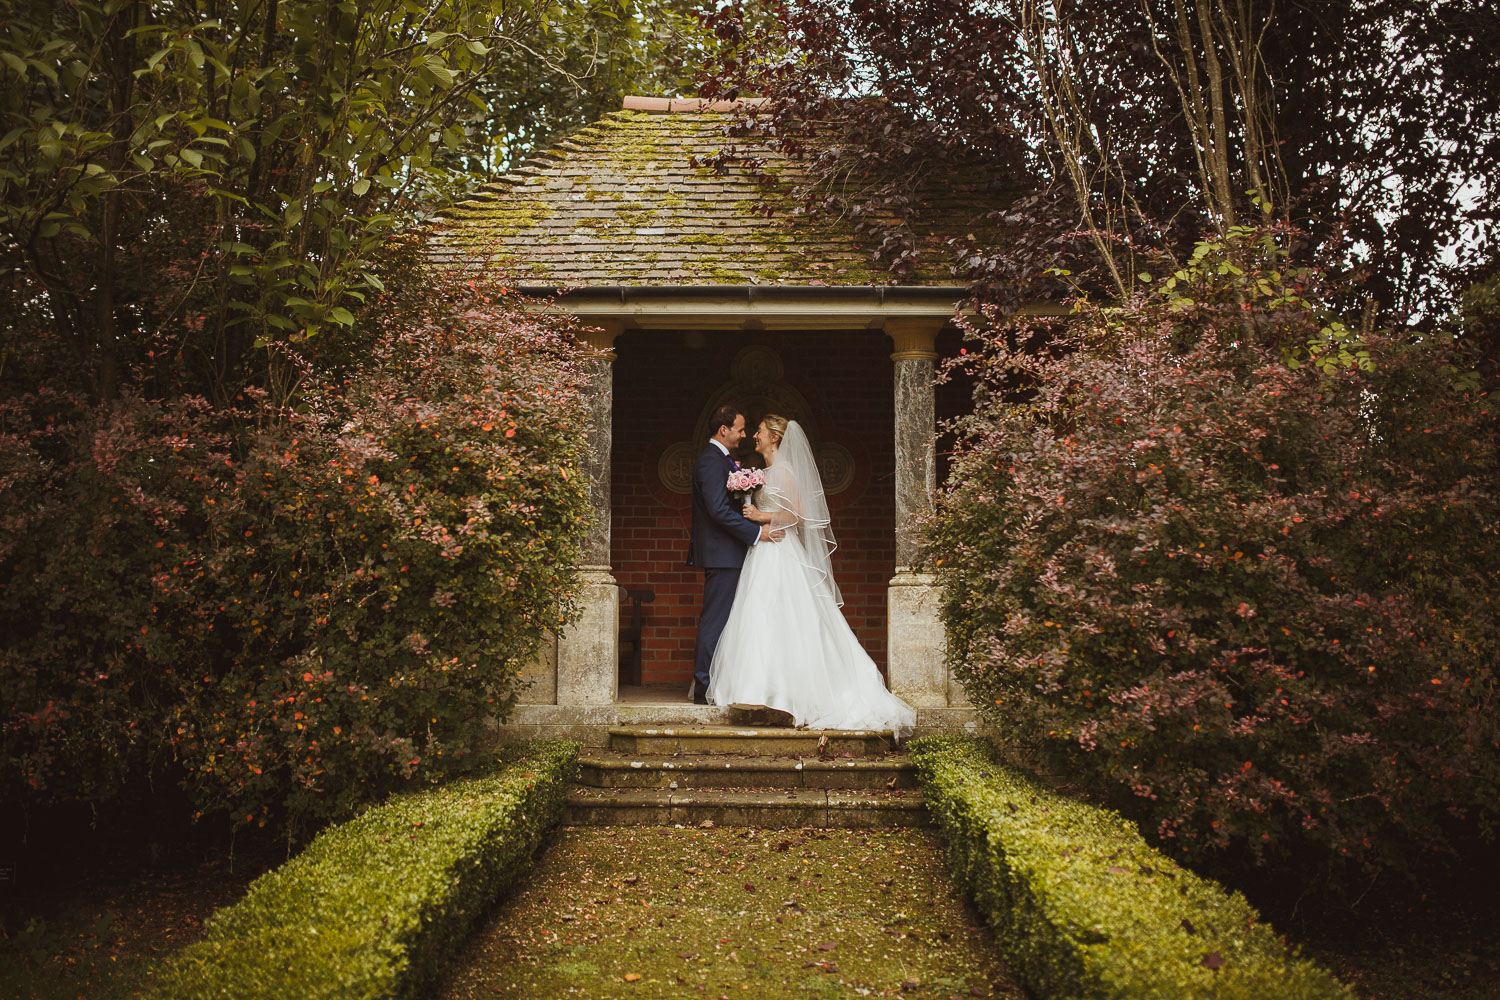 Elvetham hotel wedding photographer-8.jpg